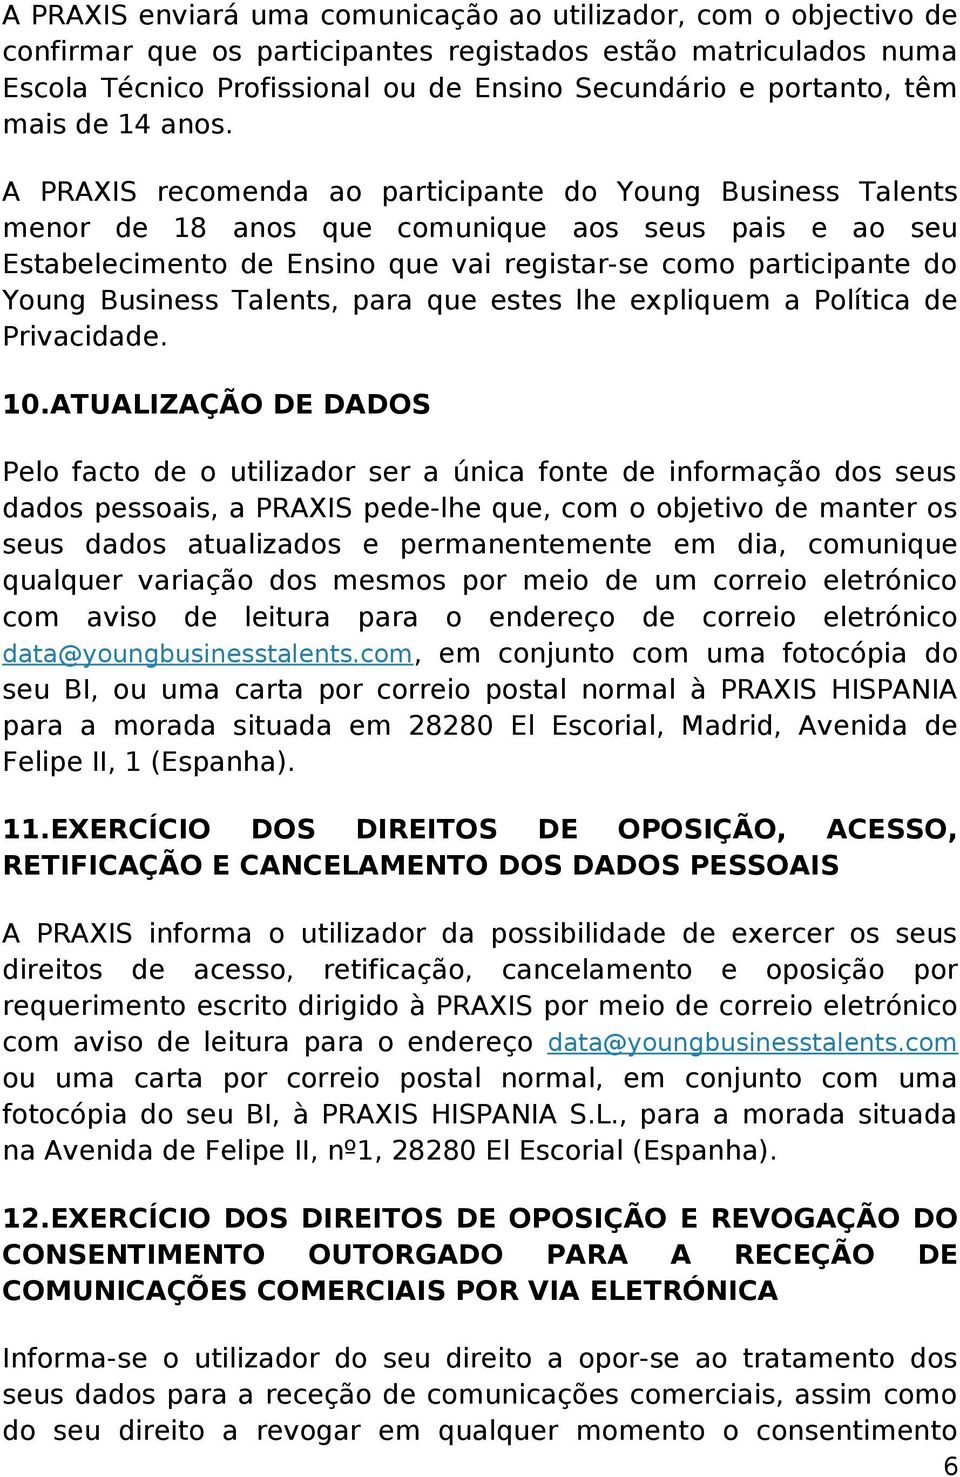 A PRAXIS recomenda ao participante do Young Business Talents menor de 18 anos que comunique aos seus pais e ao seu Estabelecimento de Ensino que vai registar-se como participante do Young Business